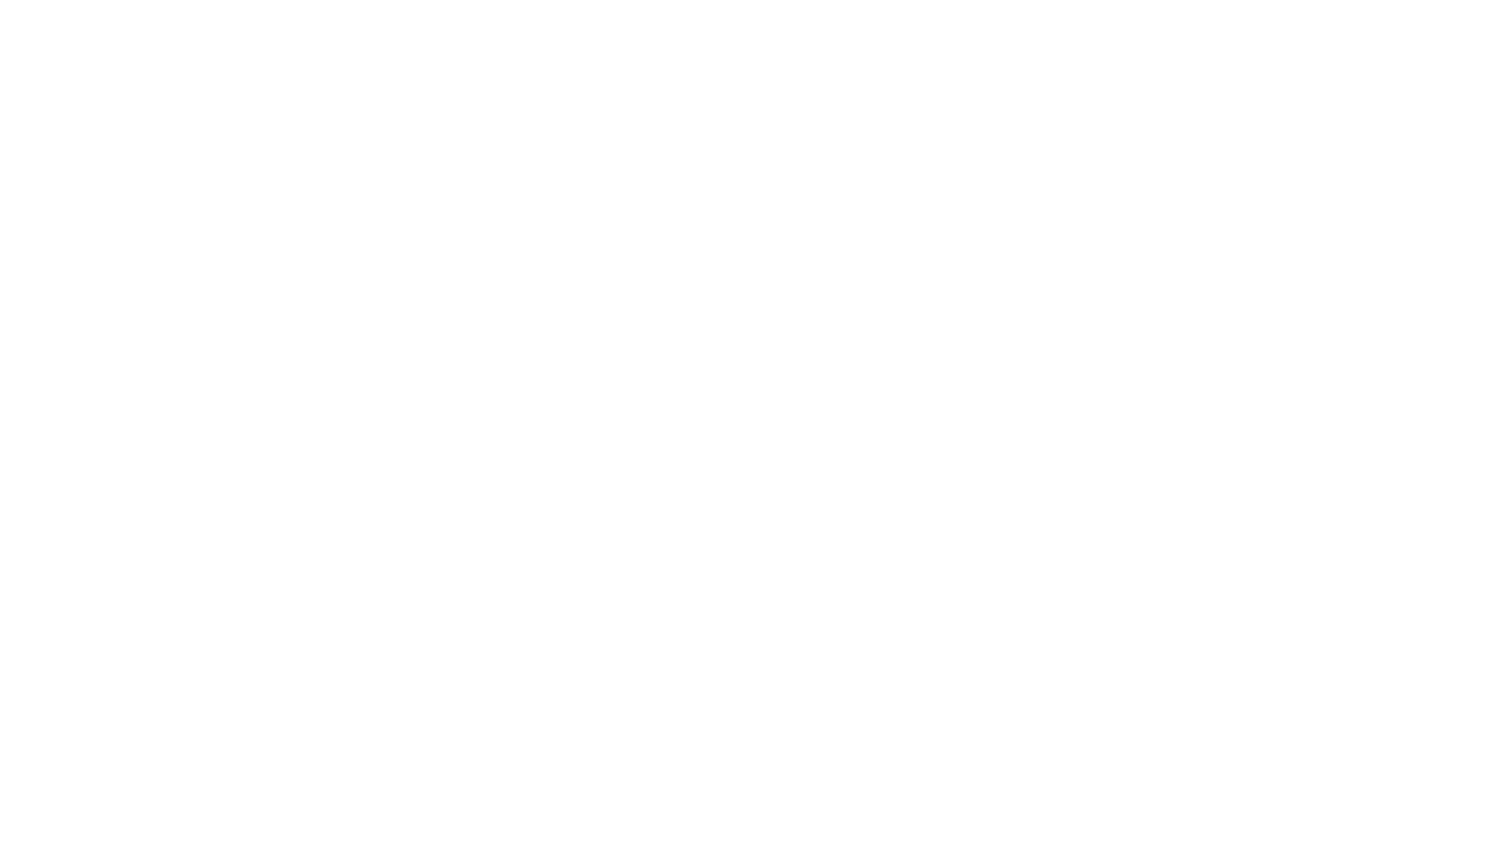 Proudly Asian Theatre